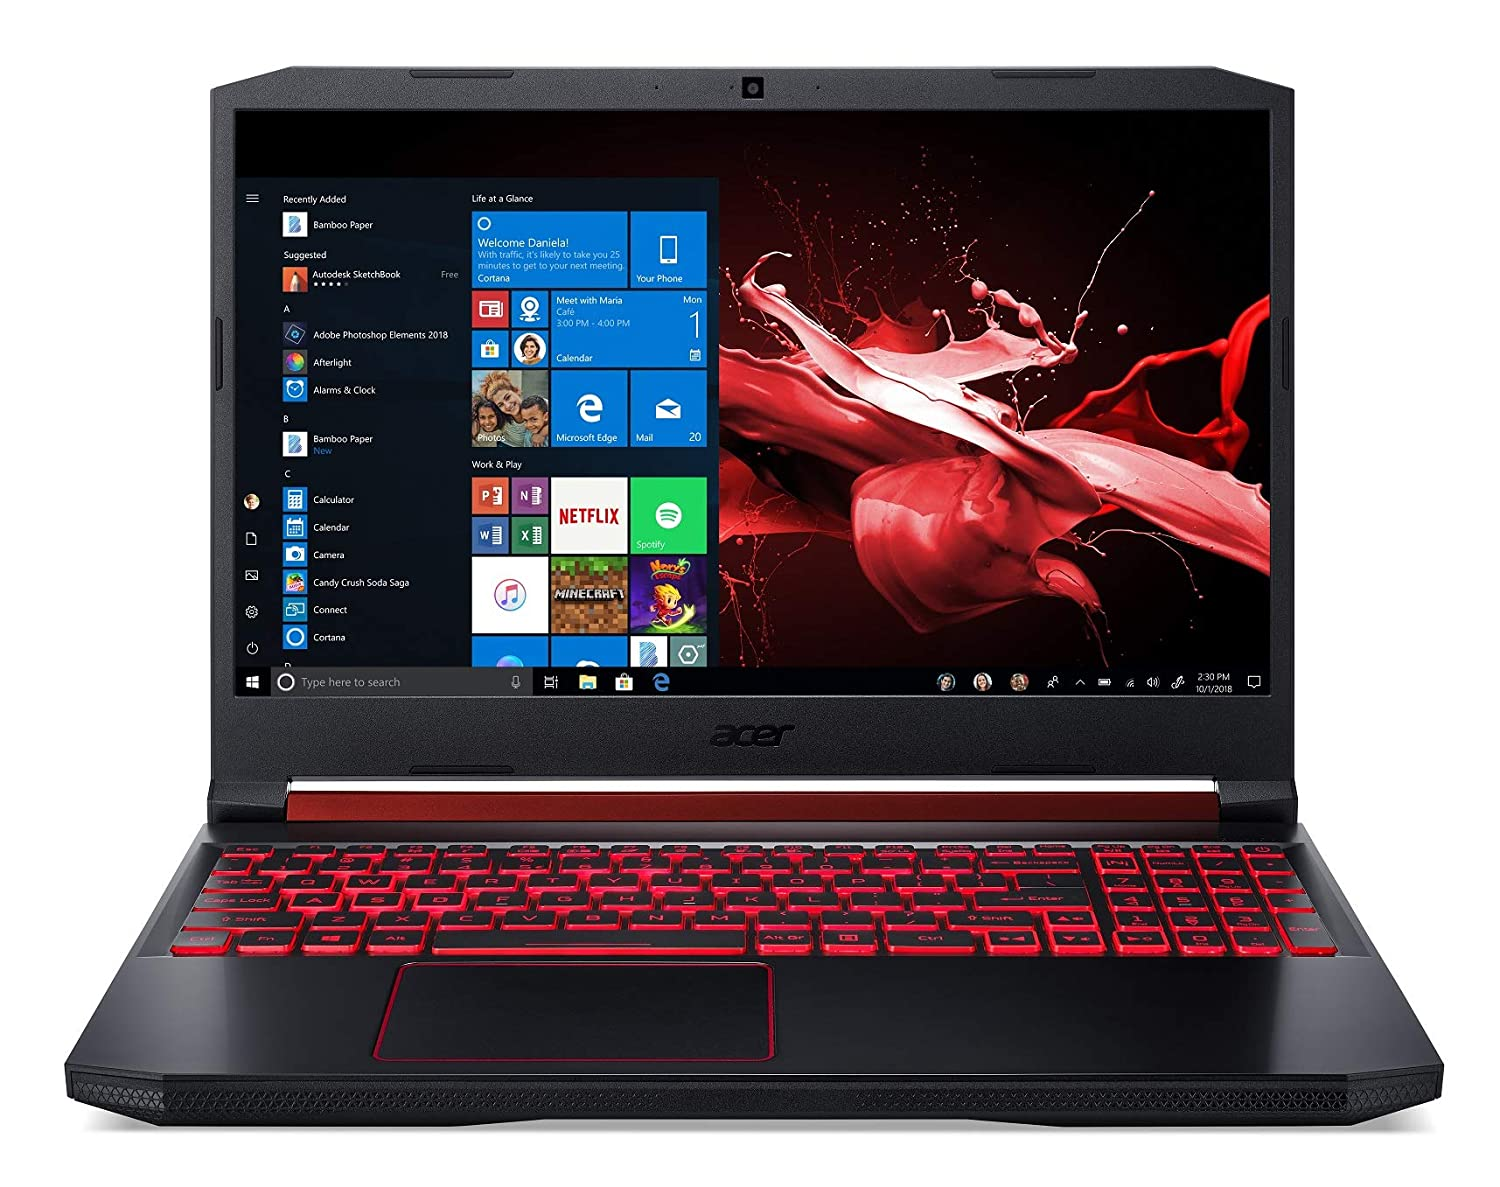 Acer Nitro 5 Intel Core i5-9300H 15.6-inch Full HD 1920 x 1080 Display Thin and Light Gaming Laptop (8GB/1TB+256GB SSD/Windows 10 Home/GTX 1650 Graphics/Obsidian Black/2.3 kgs),AN515-54